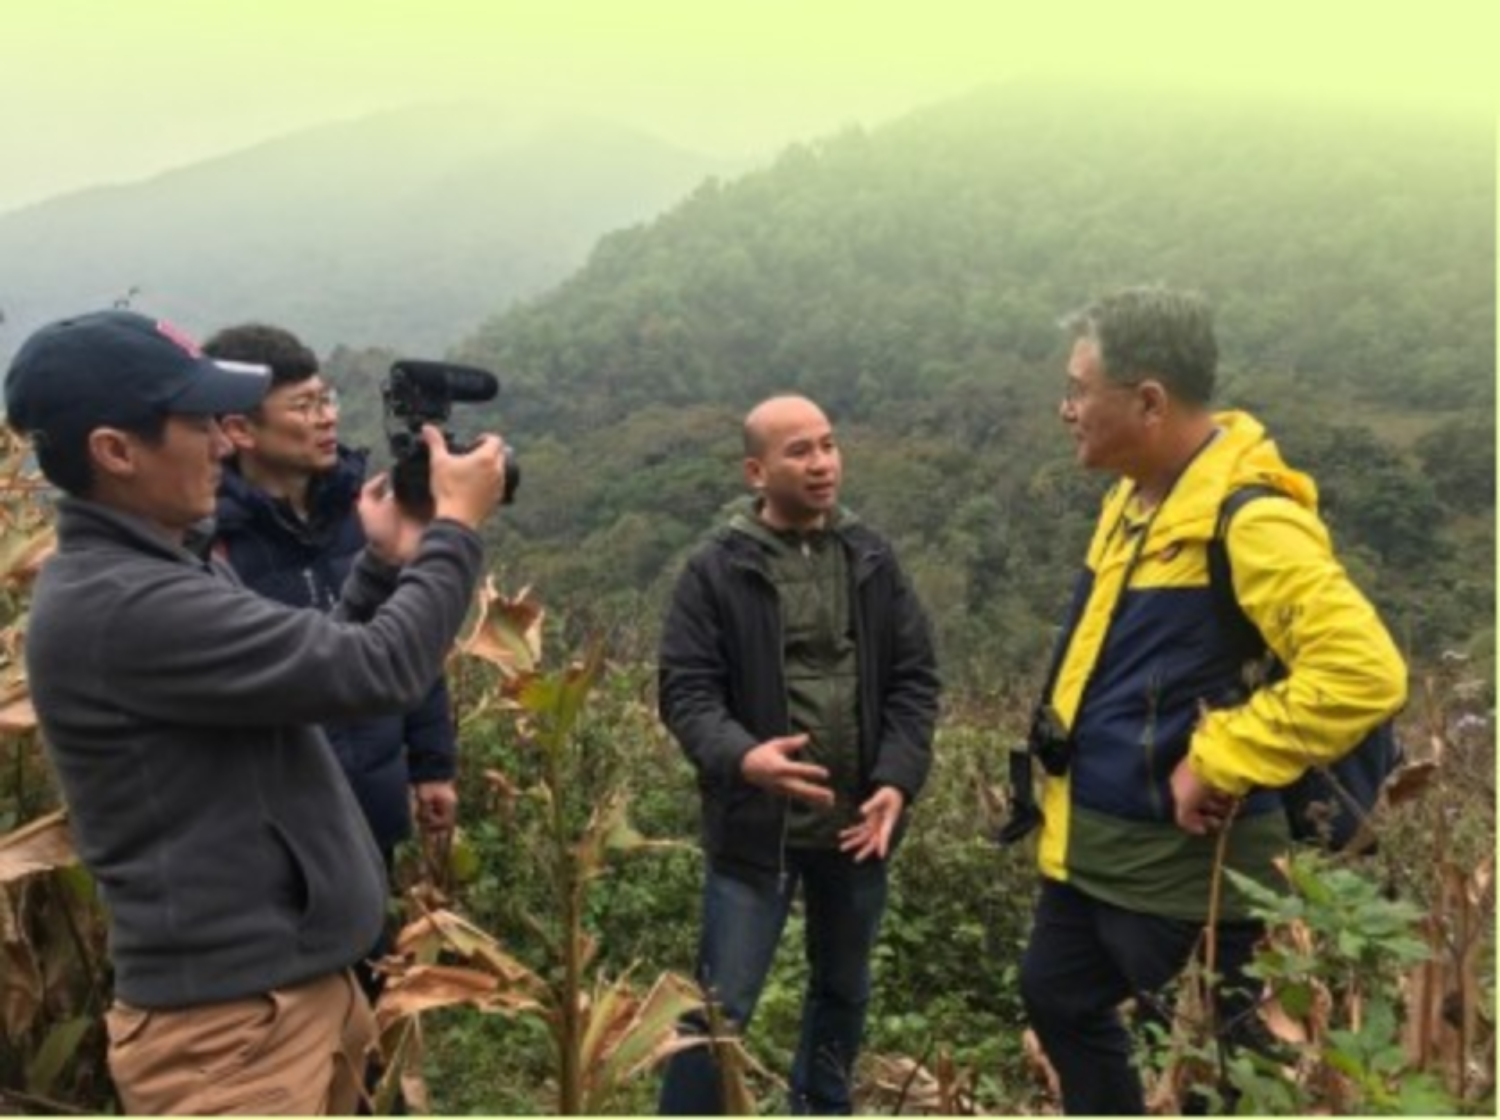 UNESCO global geopark video promotion production team in Cao Bang